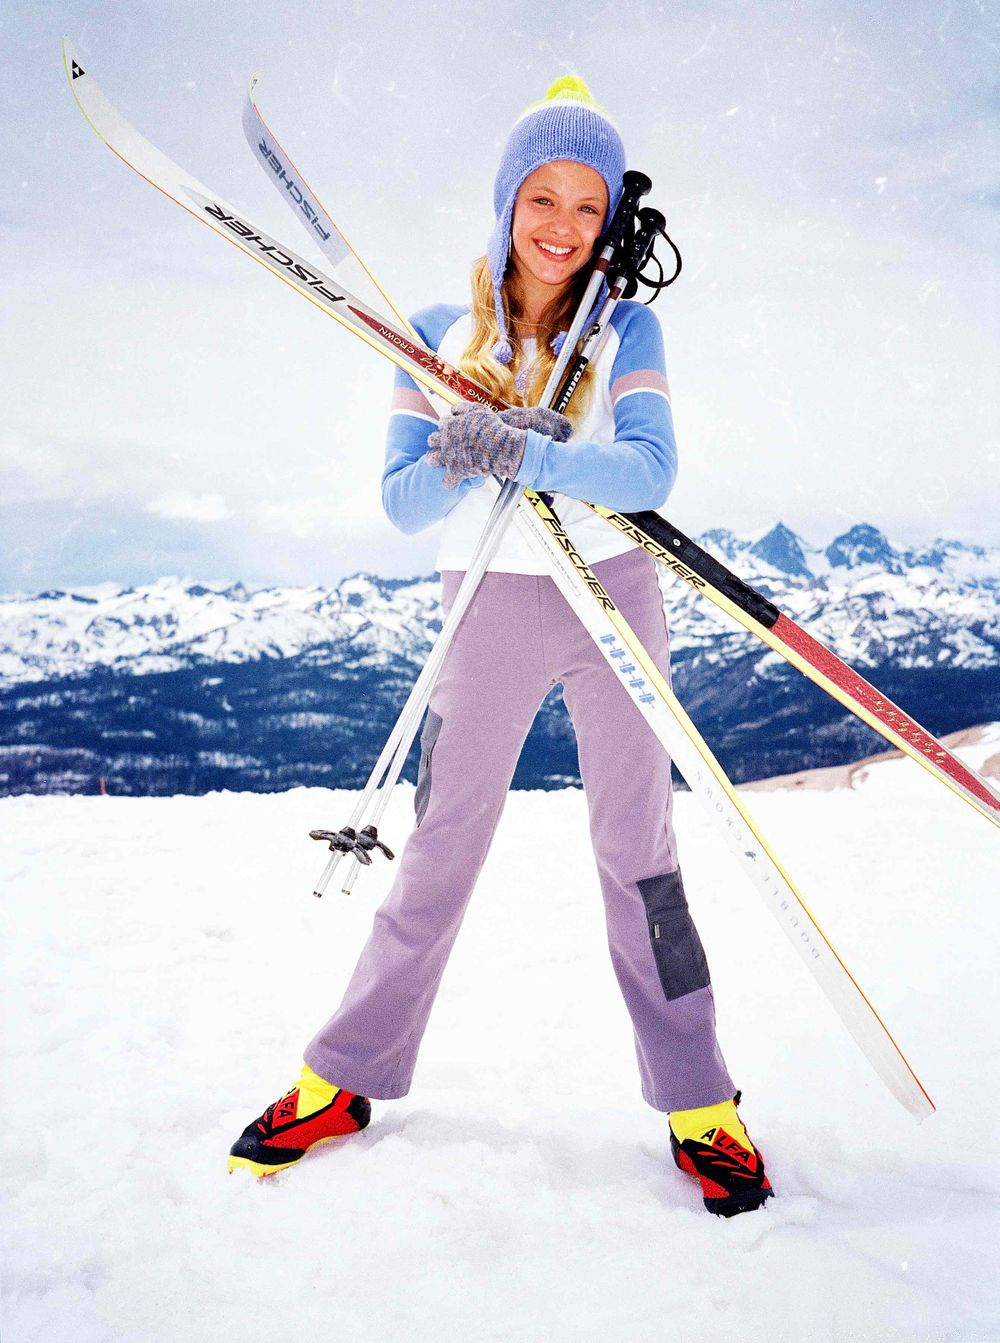 American Girl Girl with Skis